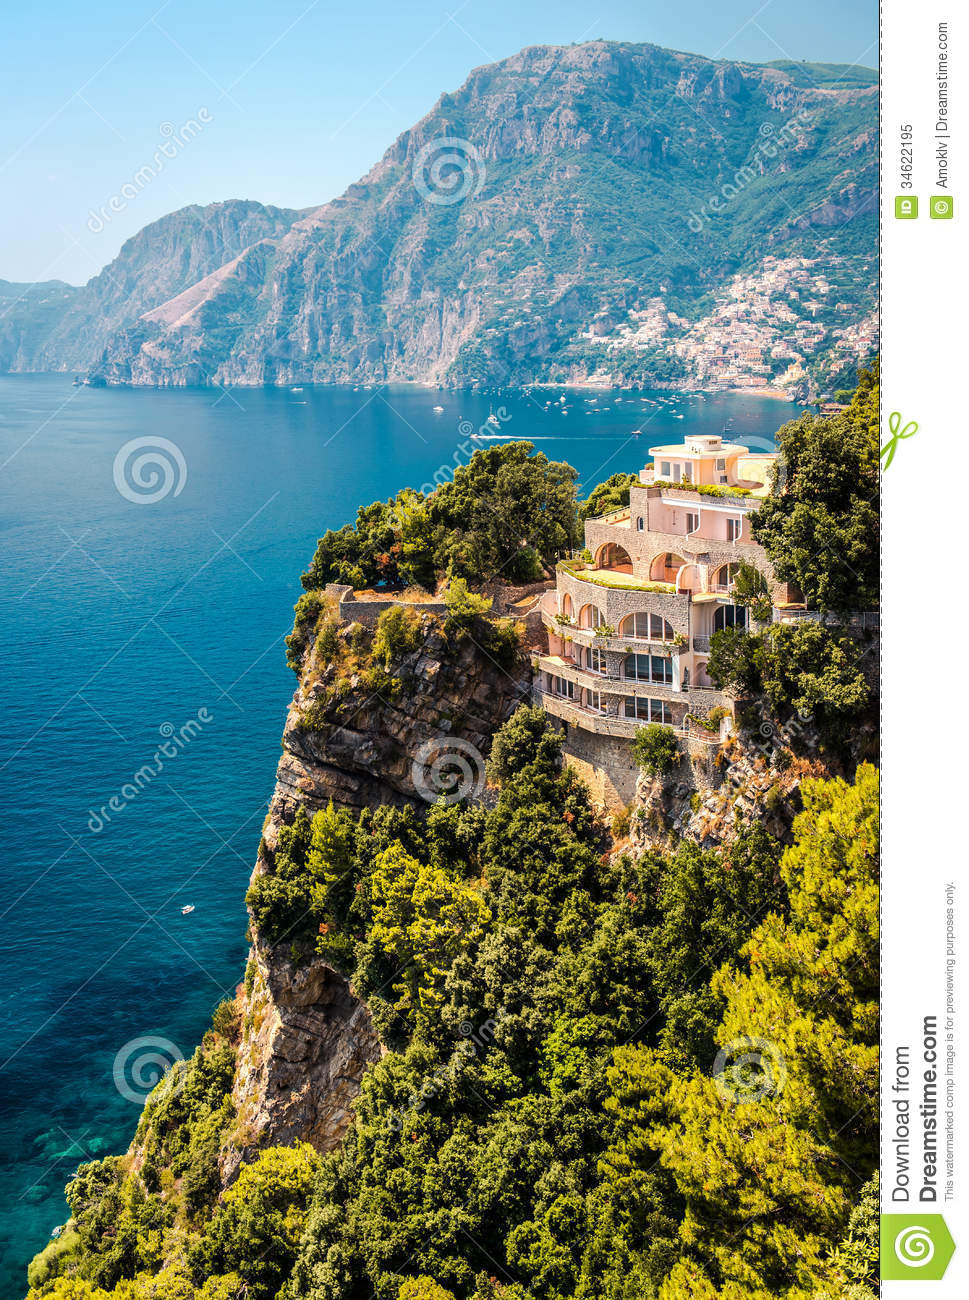 amalfi coast. italy royalty free stock photo - image: 34622195